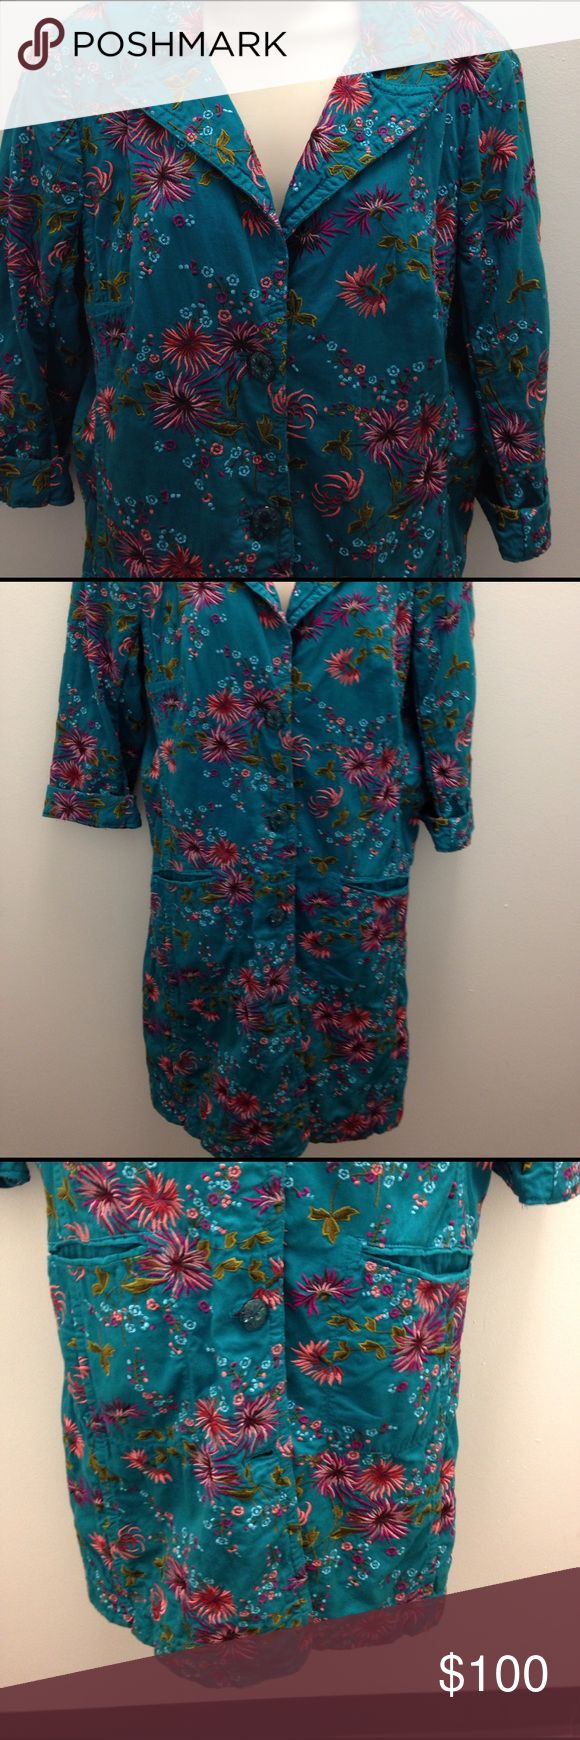 """Johnny Was Teal Embroidered Long Blazer Jacket Johnny Was Teal Embroidered long blazer jacket. Sz L. Pre-owned and in great condition. Armpit to armpit- 20"""" / waist - 18"""" / length- 40"""" Johnny Was Jackets & Coats Blazers"""